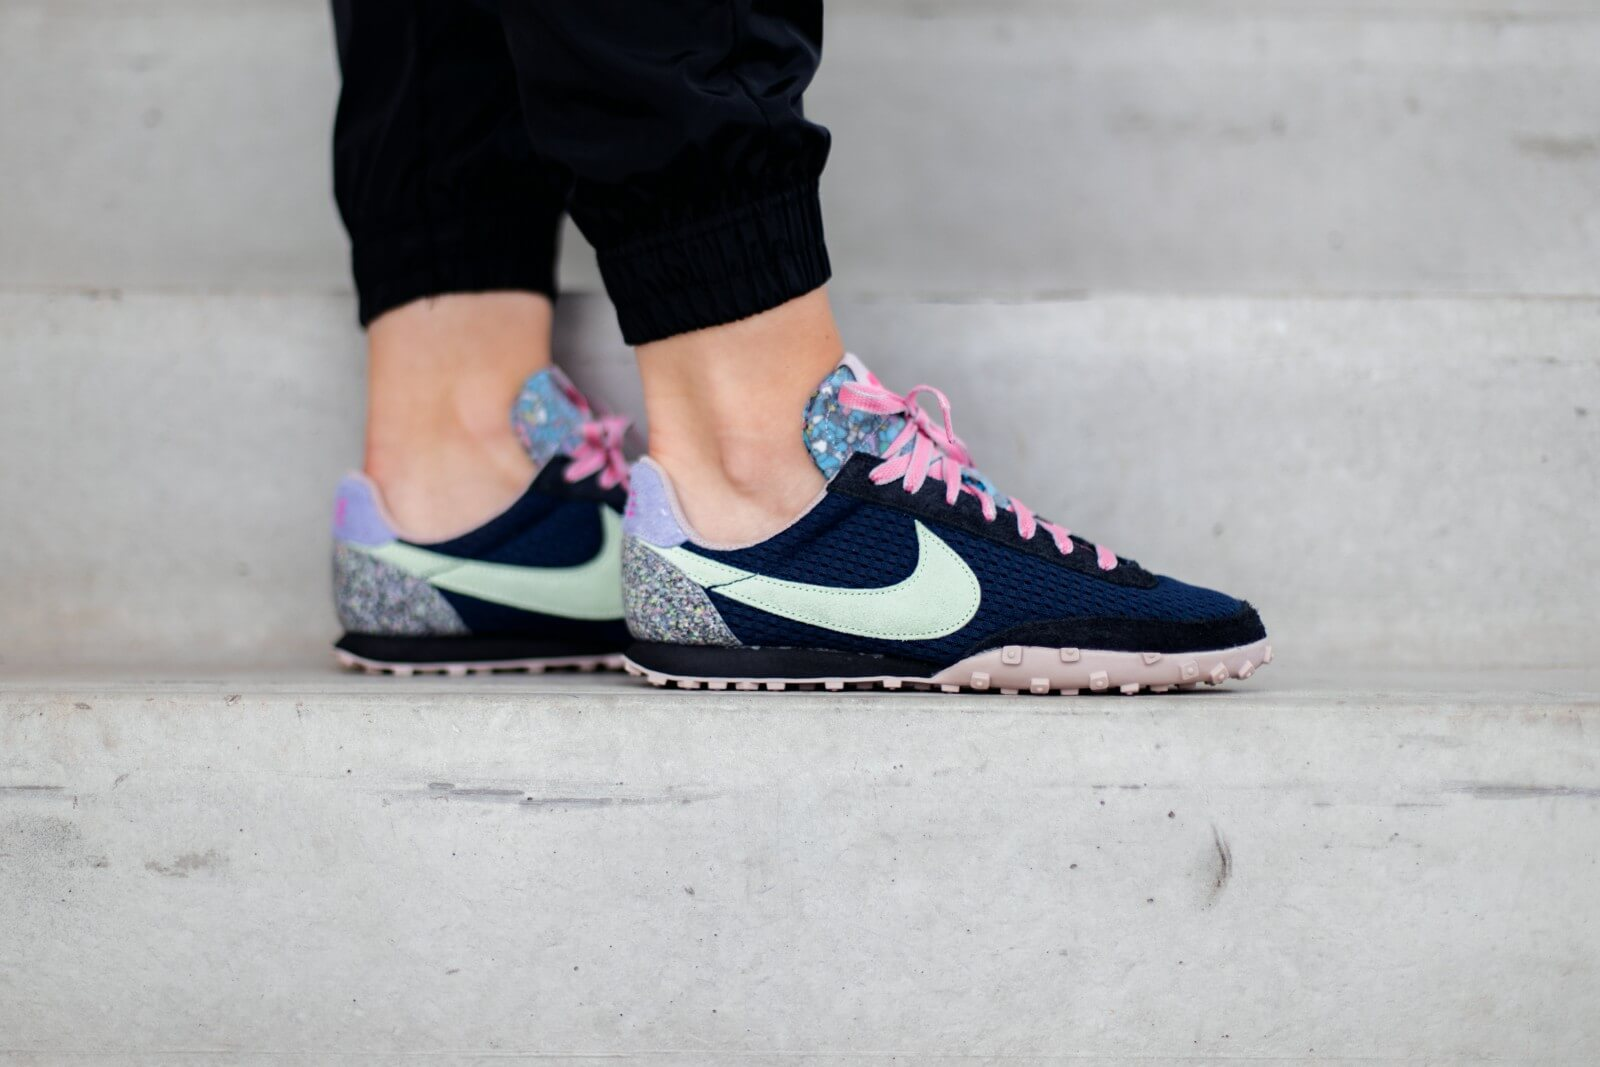 Nike Waffle Racer - Midnight Navy/Vapor Green/Black #DA4656-400-Preorder Item-Navy Selected Shop